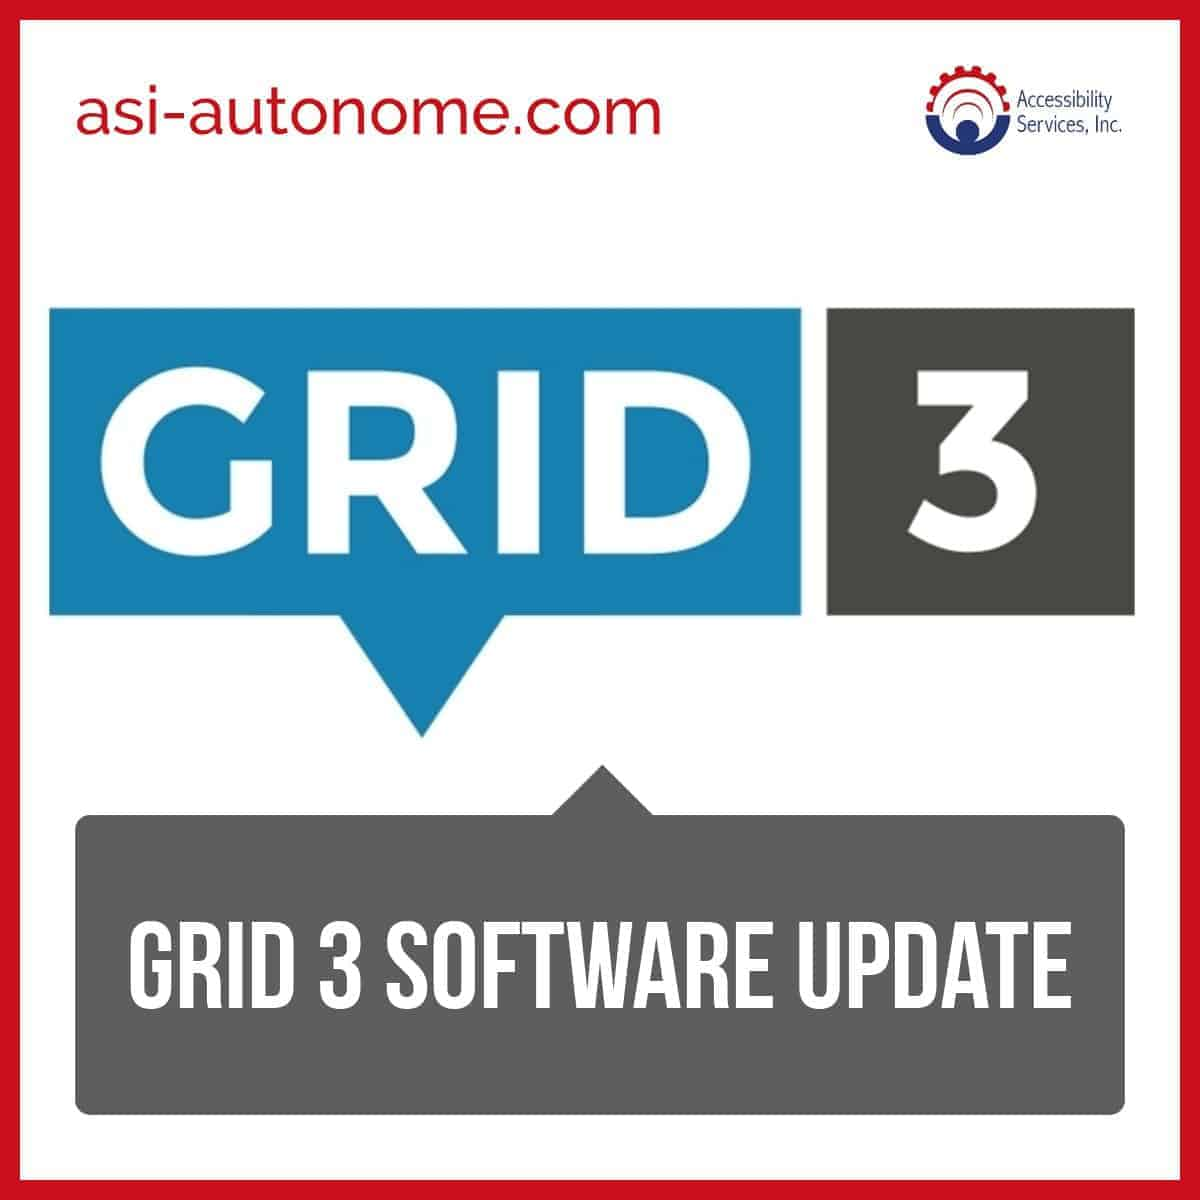 The Latest Grid 3 Software Update Version 3033 Is Now Available